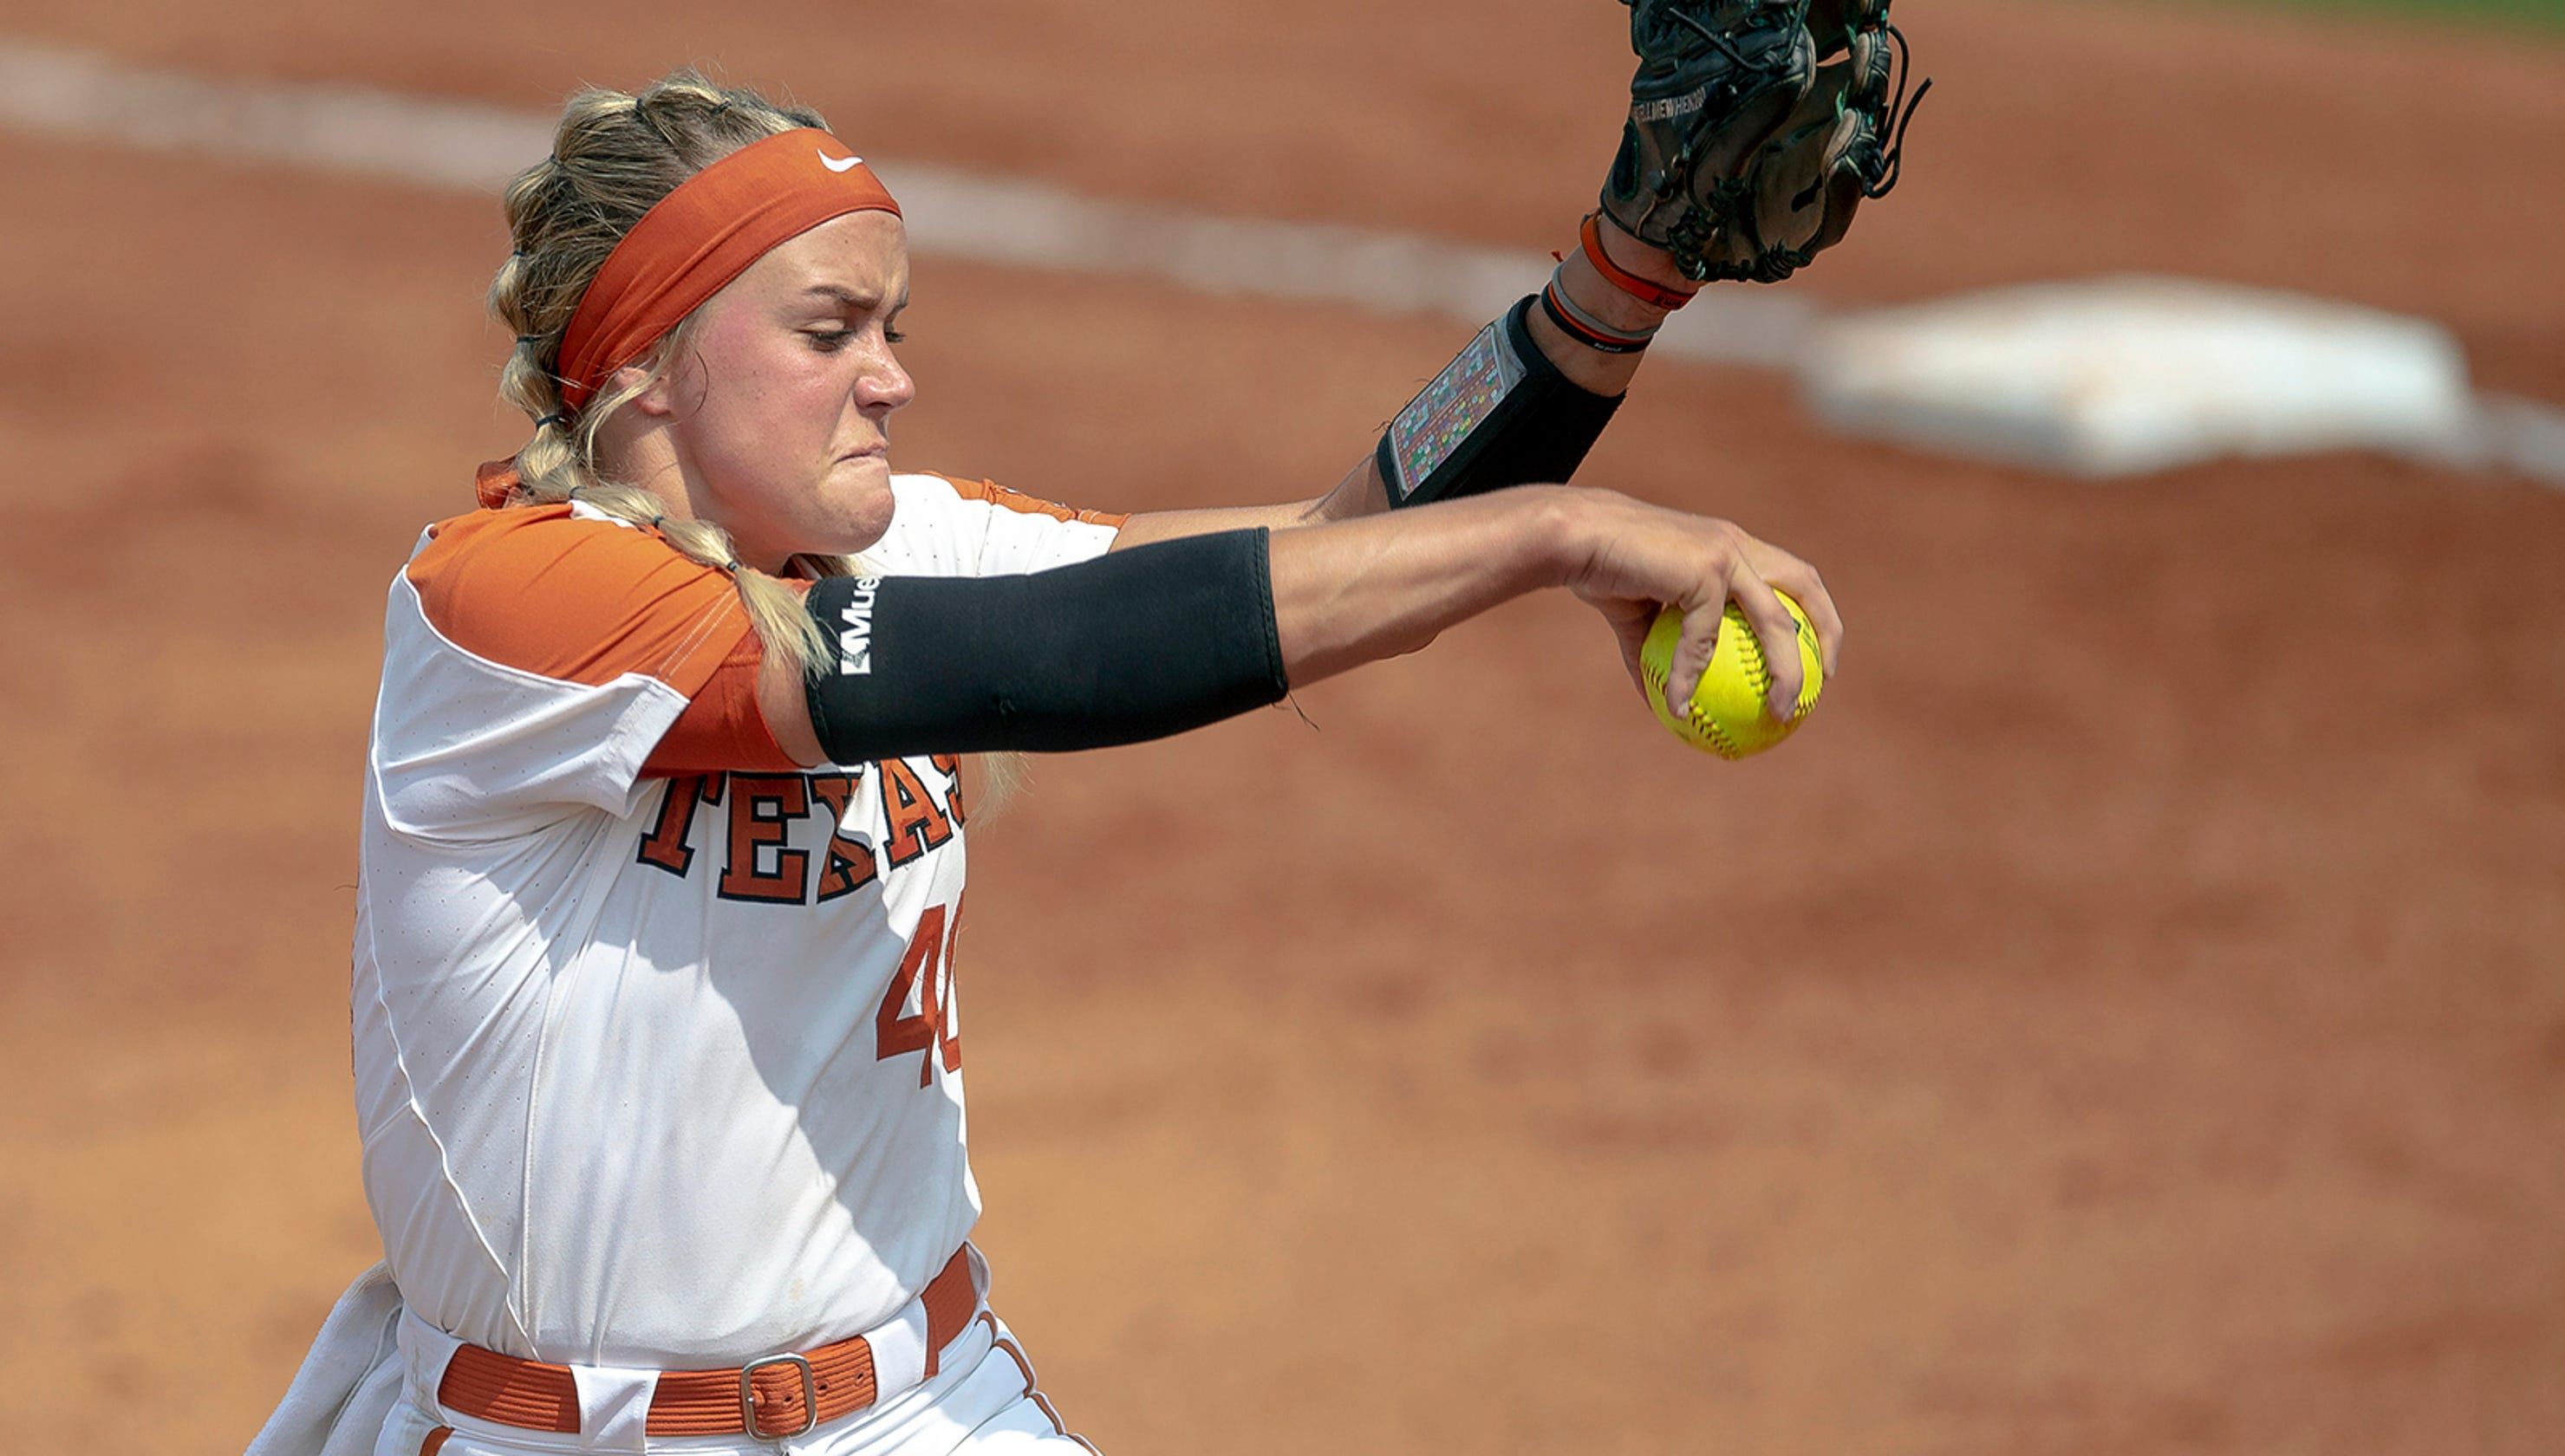 Pitcher Miranda Elish taken to hospital after throw hits her in face in Texas-Alabama game